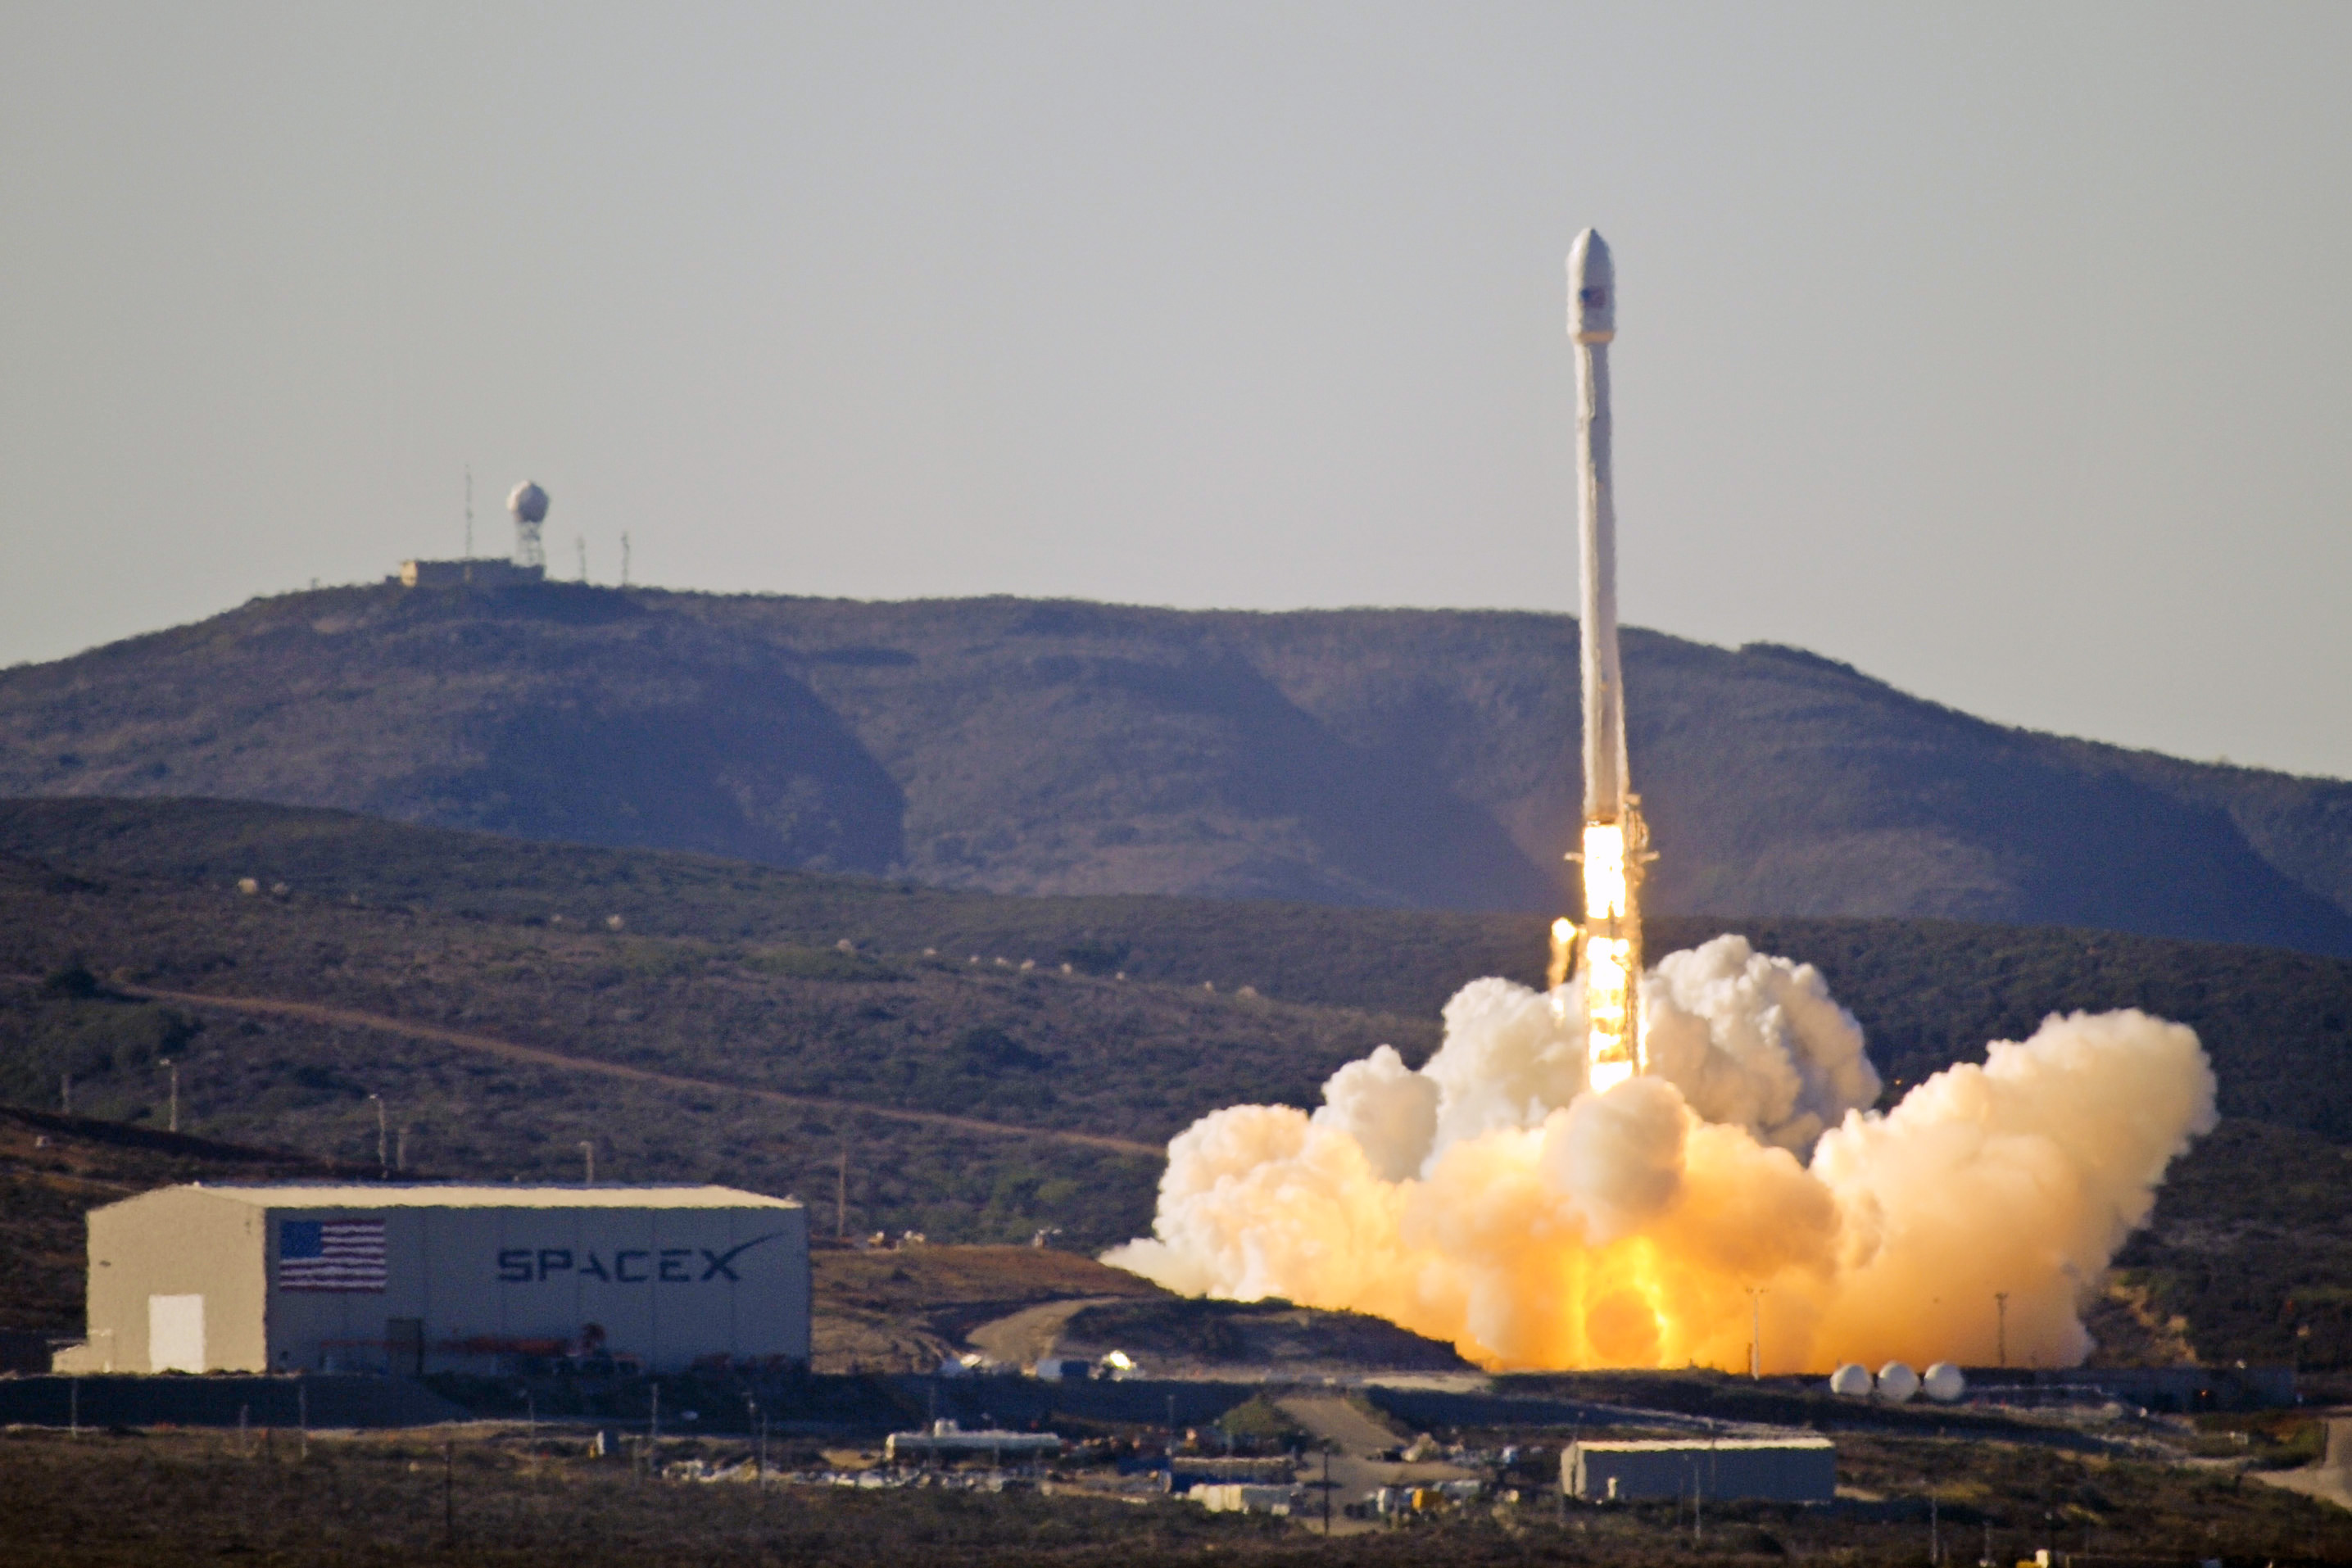 The original Falcon 9 rocket blasts off from the ground in 2013.